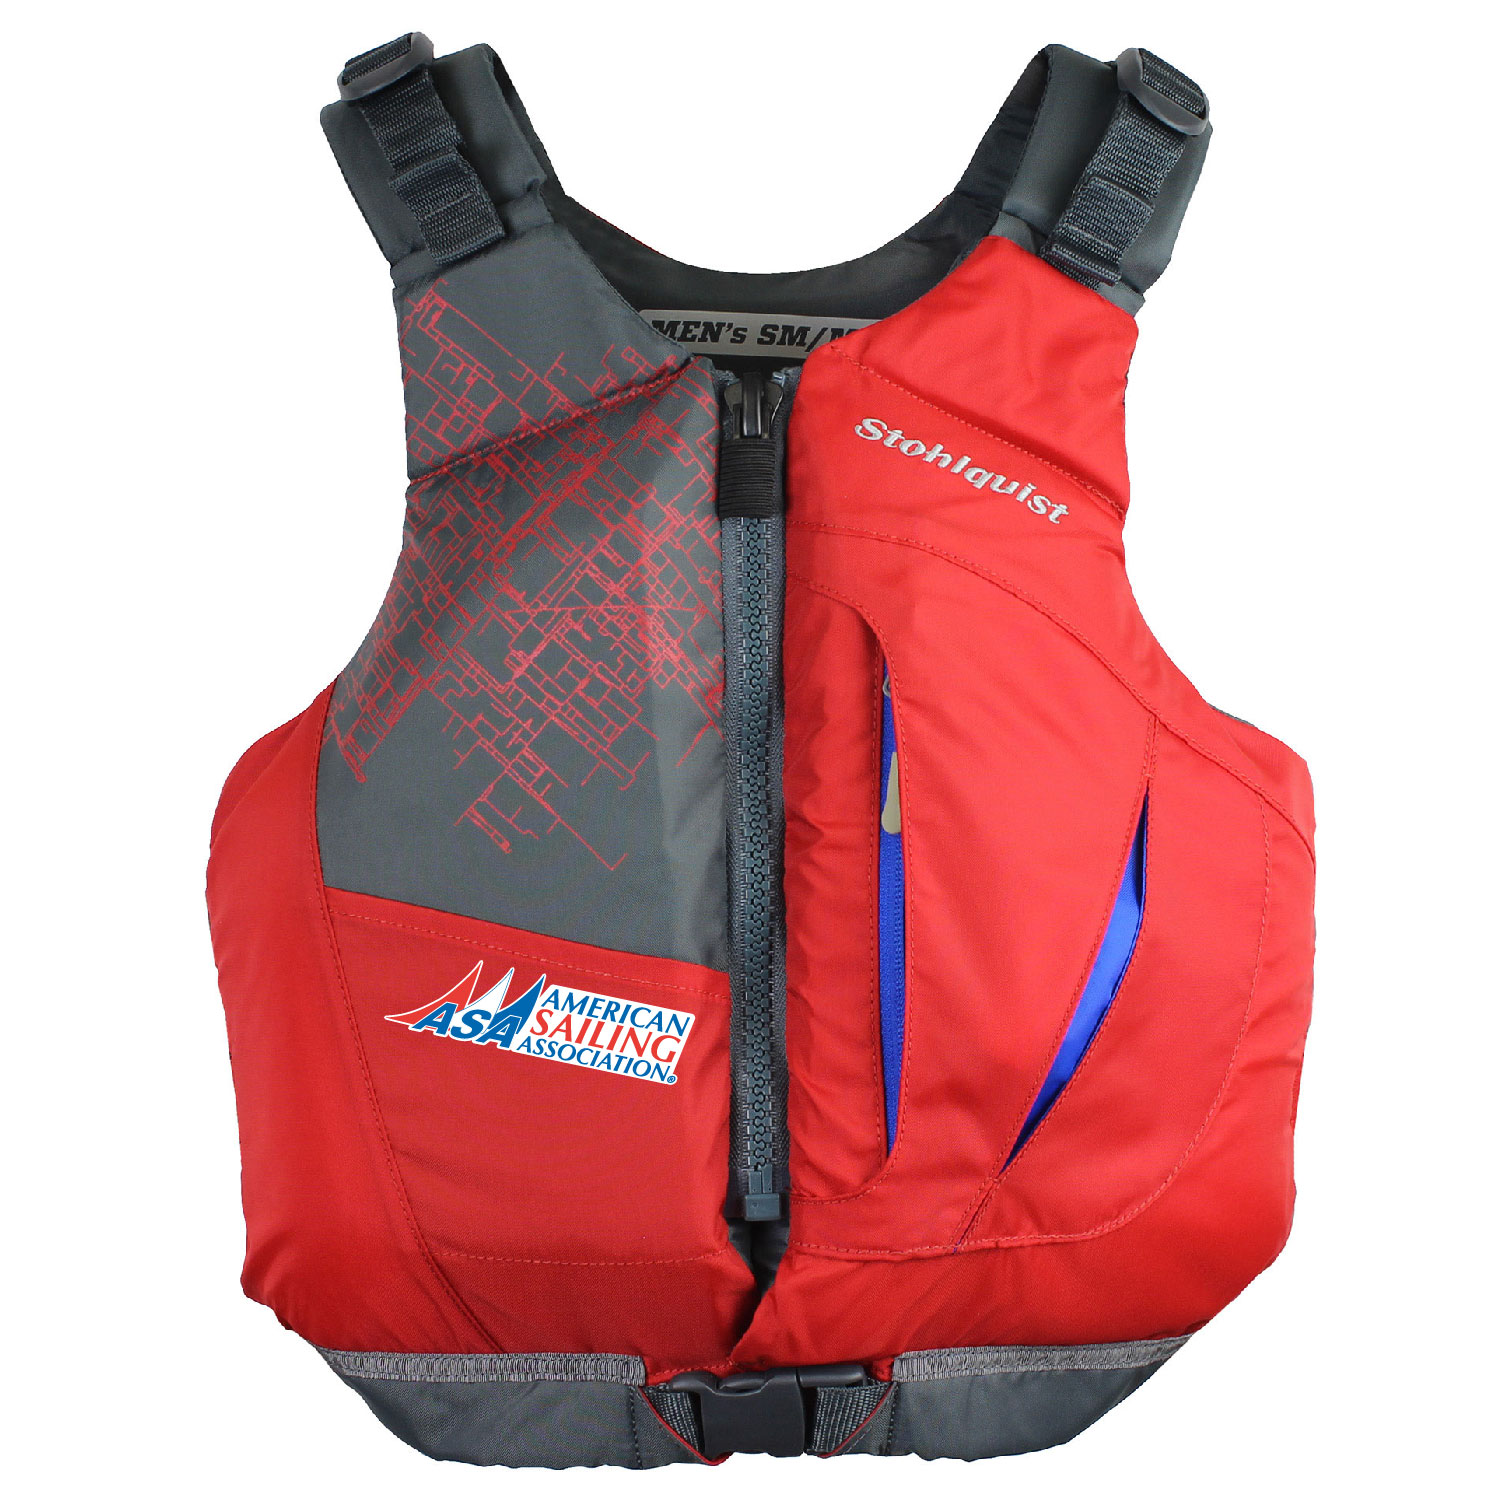 american-sailing-association-life-vests-stohlquist-02.jpg